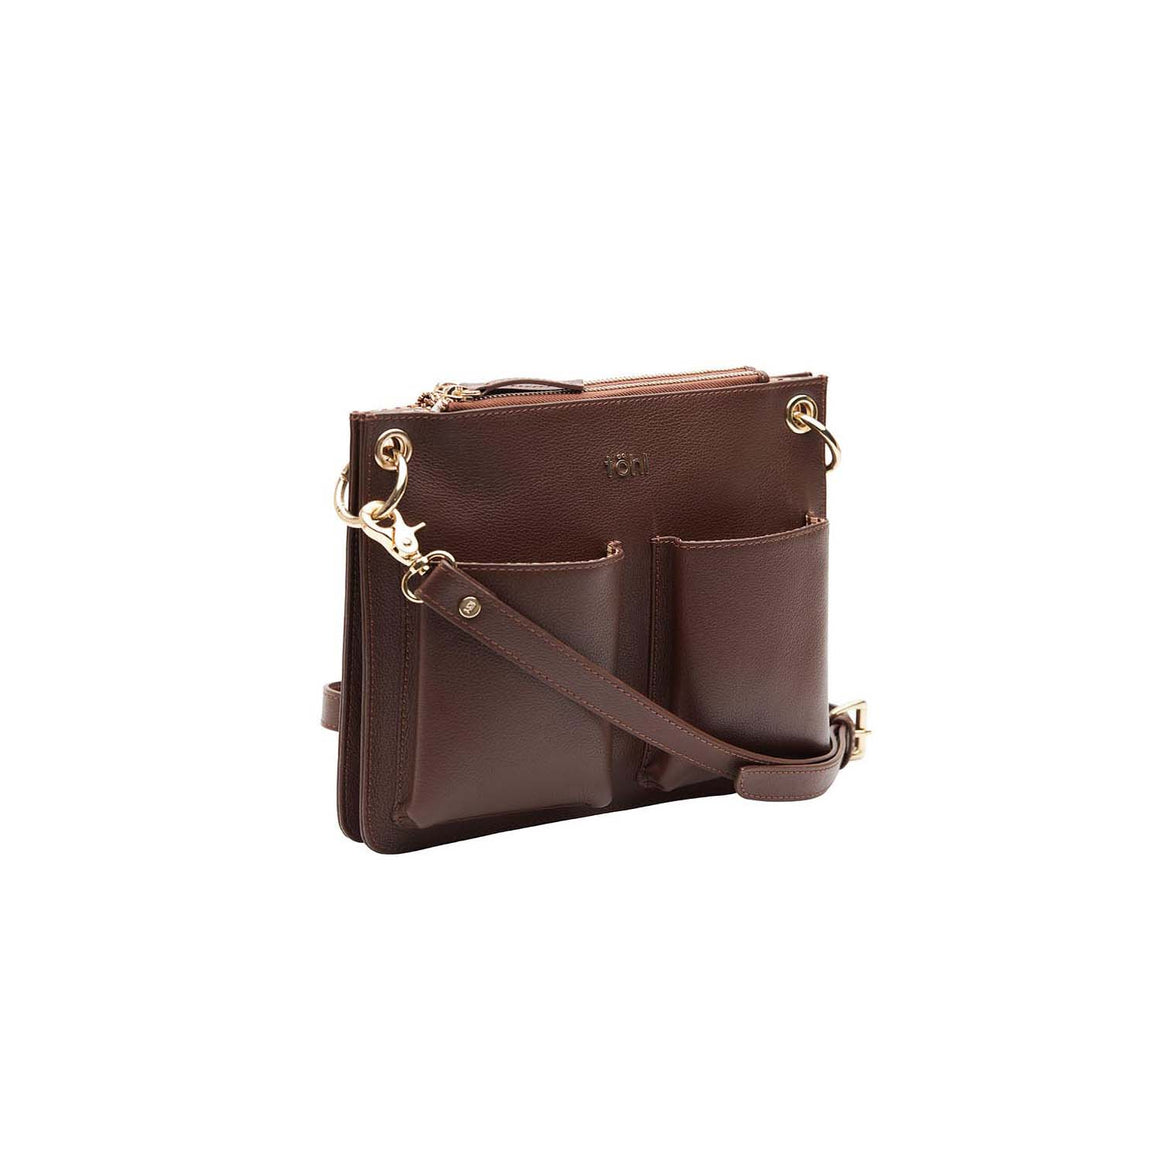 SG 0025 - TOHL LENZEIN WOMEN'S SLING & CROSSBODY BAG - CHOCO